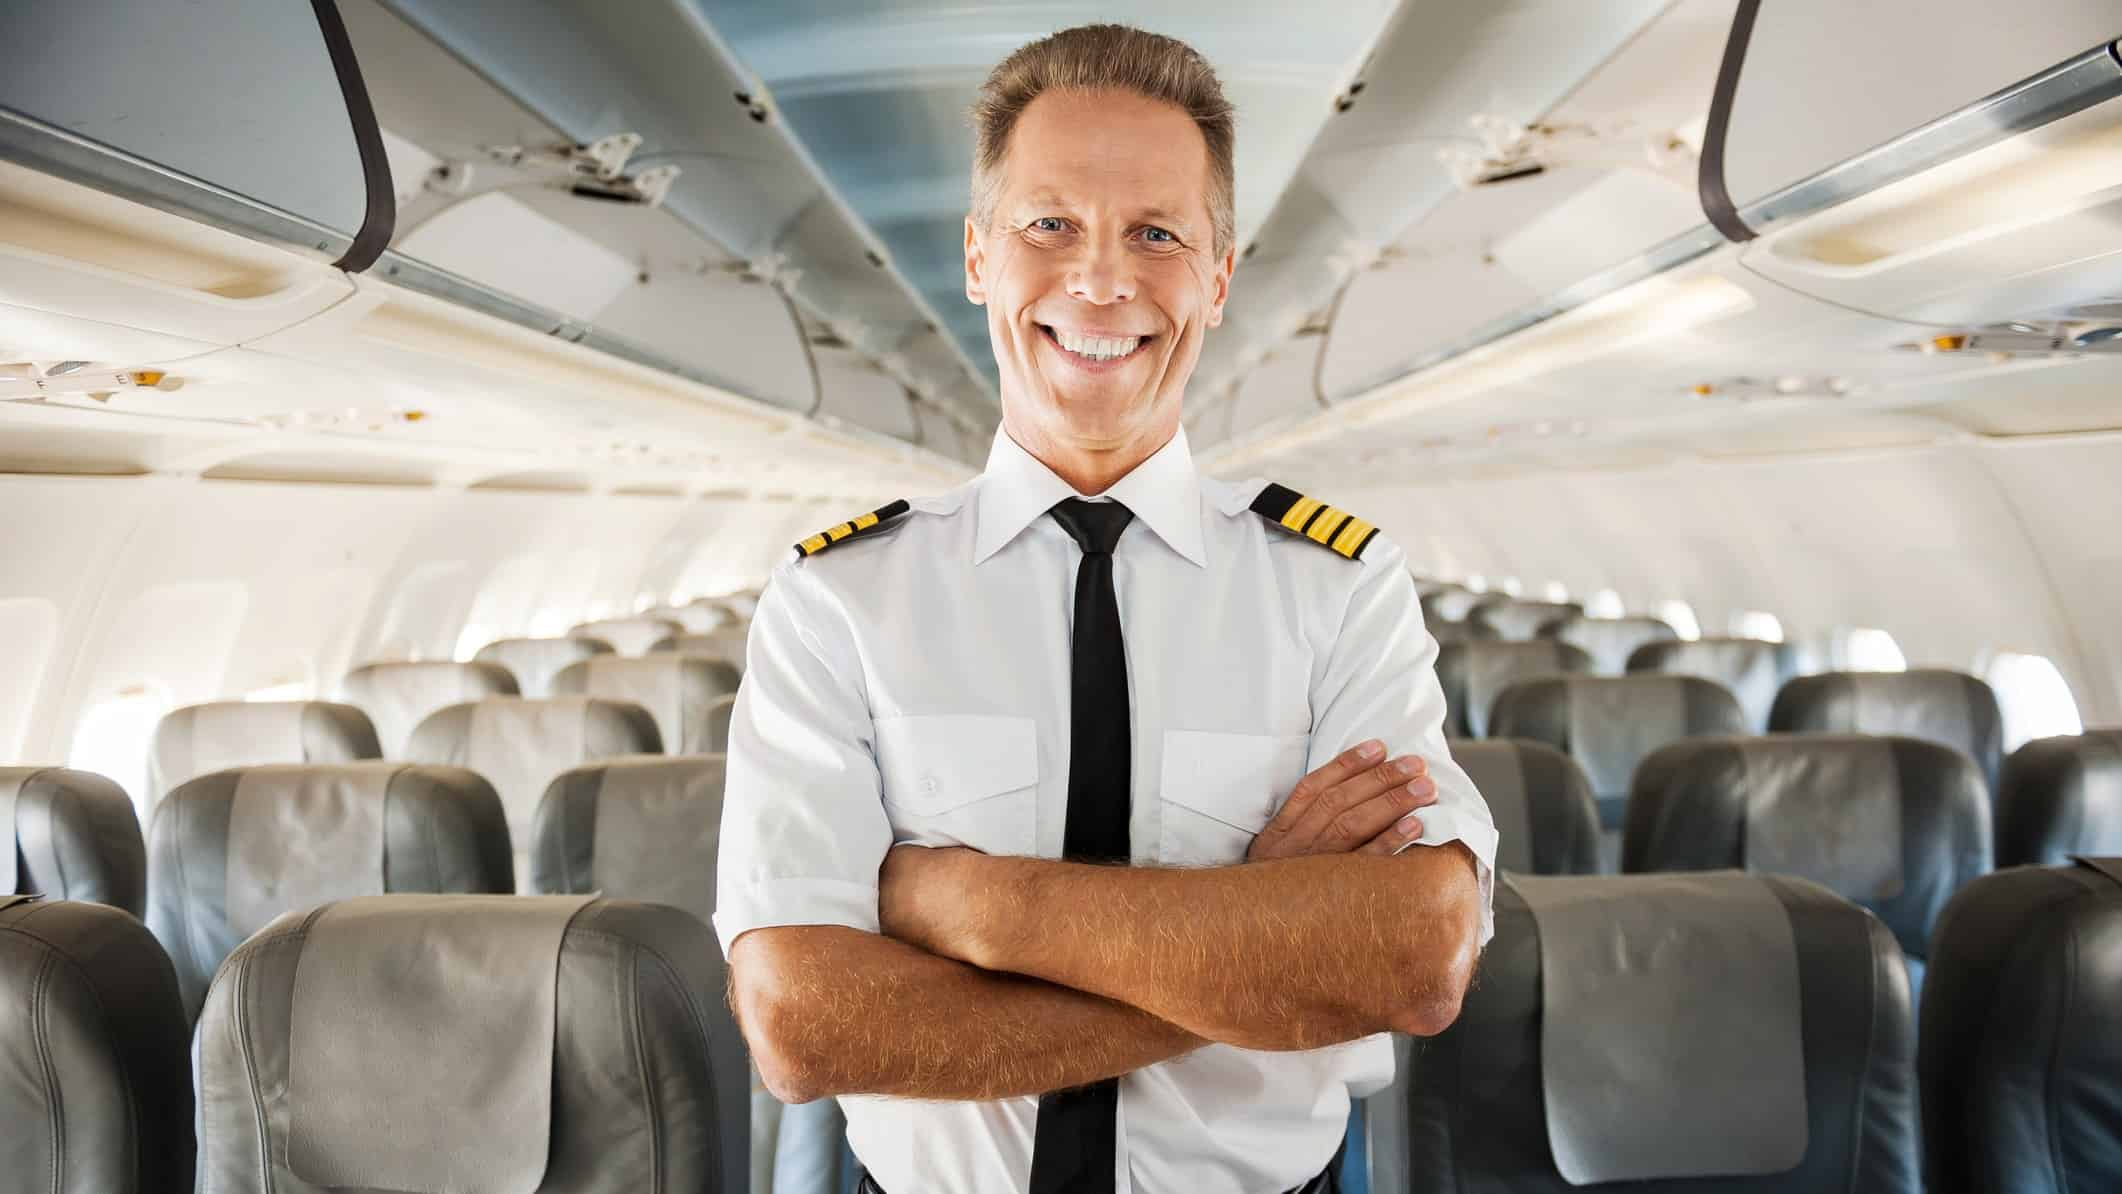 rising airline asx share price represented by happy pilot standing inside empty plane